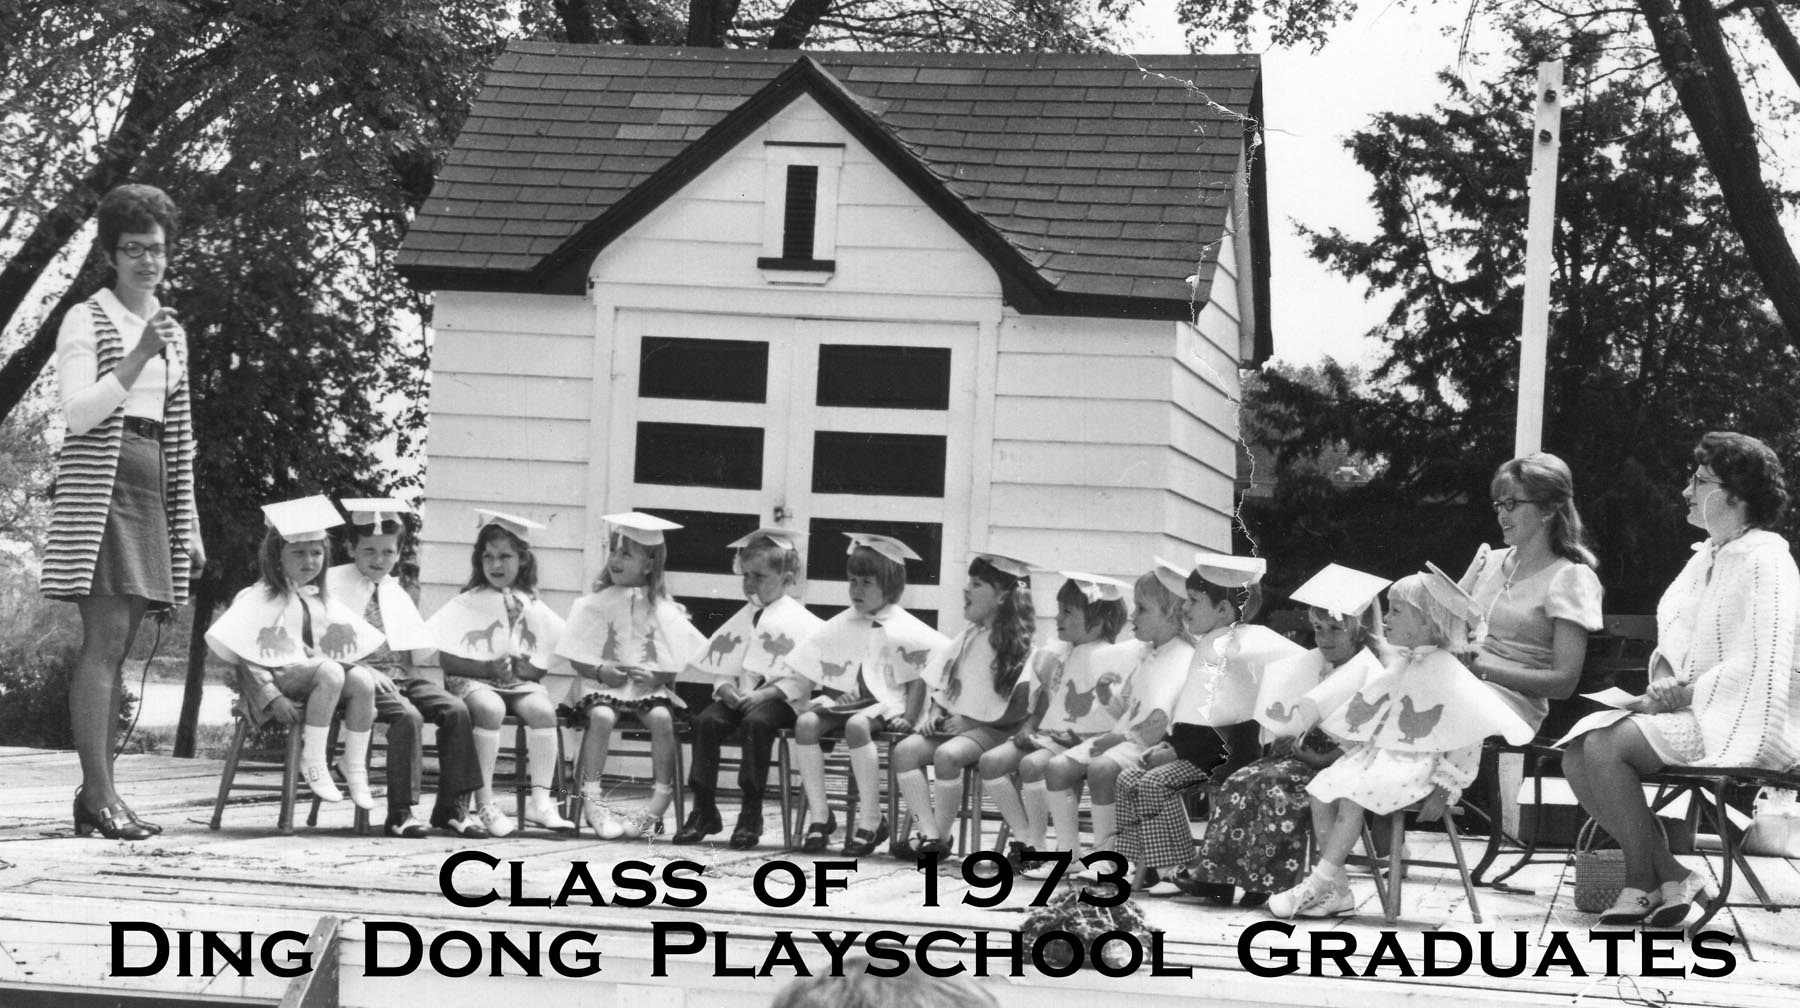 img014- 1973 DD Playschool Graduates - labeled